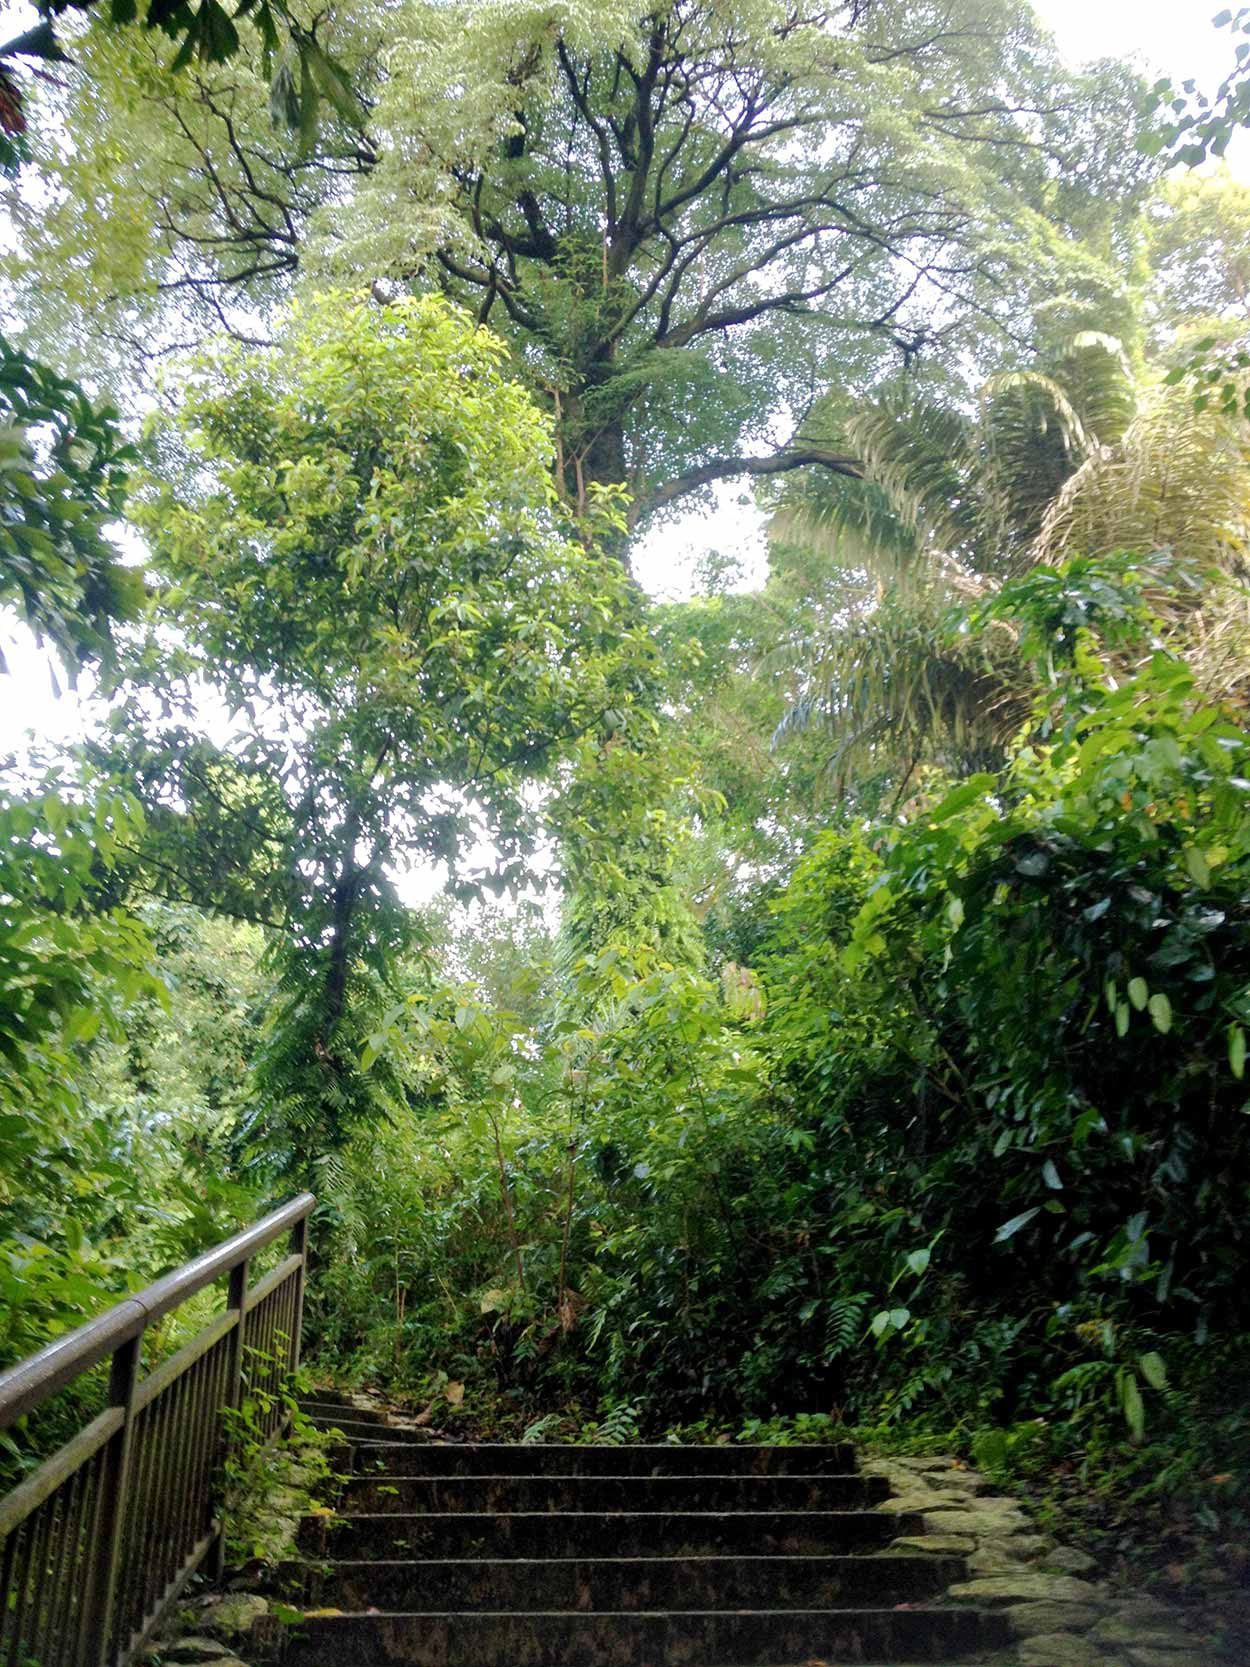 Climbing Mount Faber via the stairs of the Marang Trail, Southern Ridges Walk, Singapore